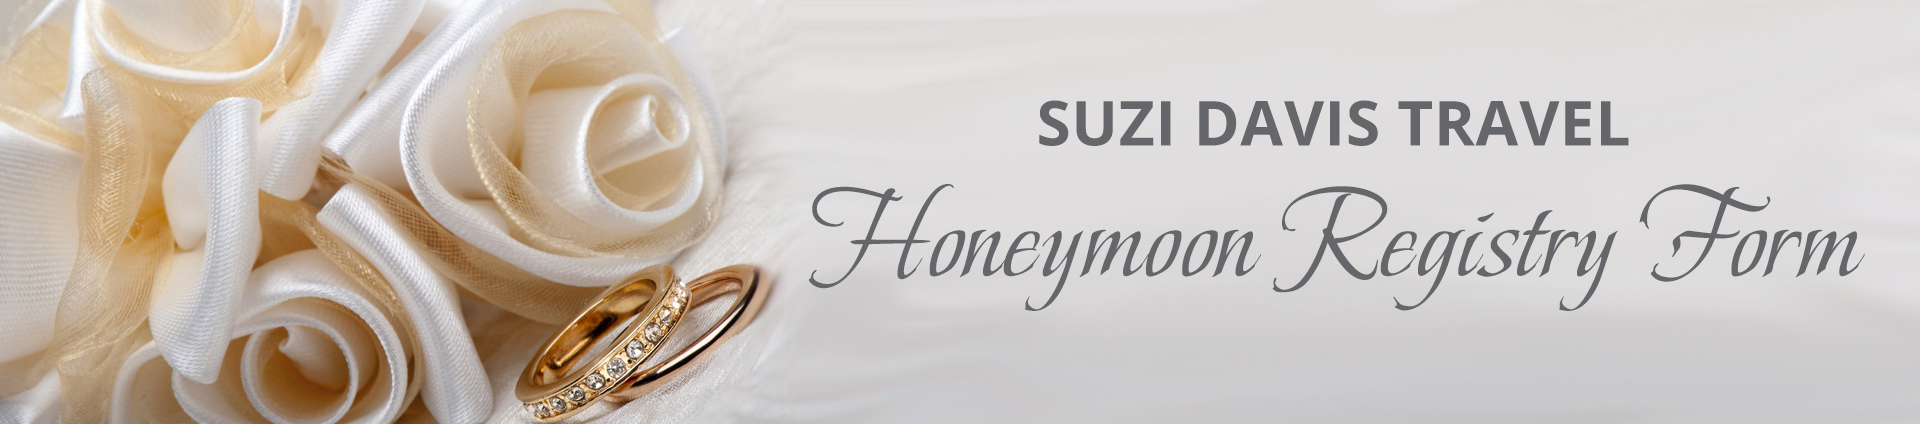 Suzi Davis Travel Honeymoon Registry Form